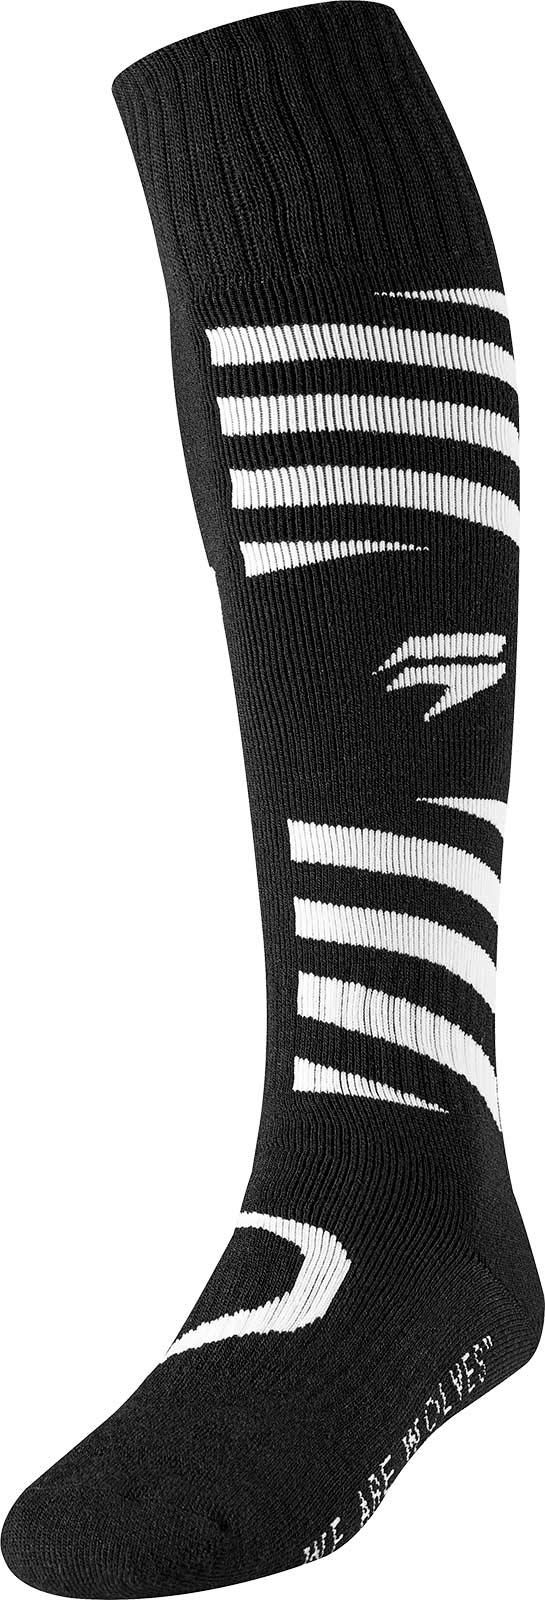 Shift White Label Muse Socks-Black-L/XL by Shift